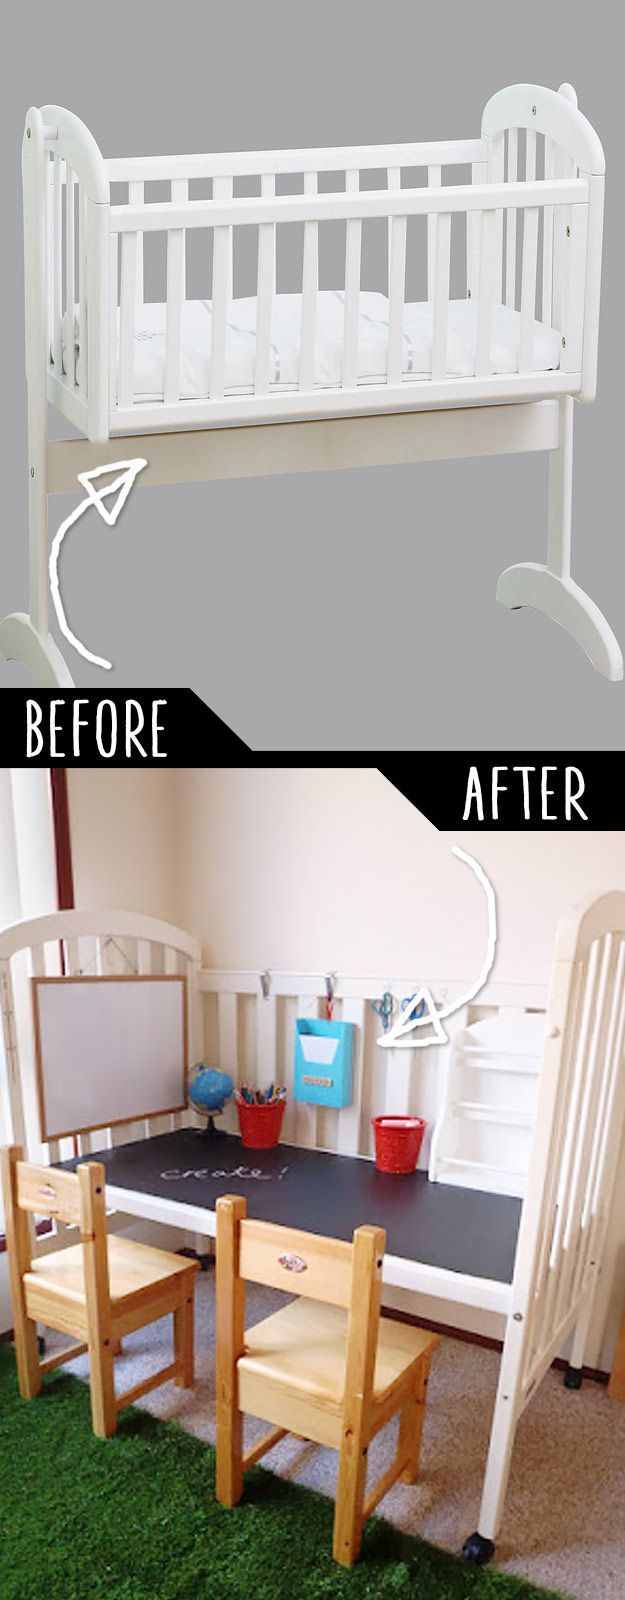 Superieur 39 Clever DIY Furniture Hacks